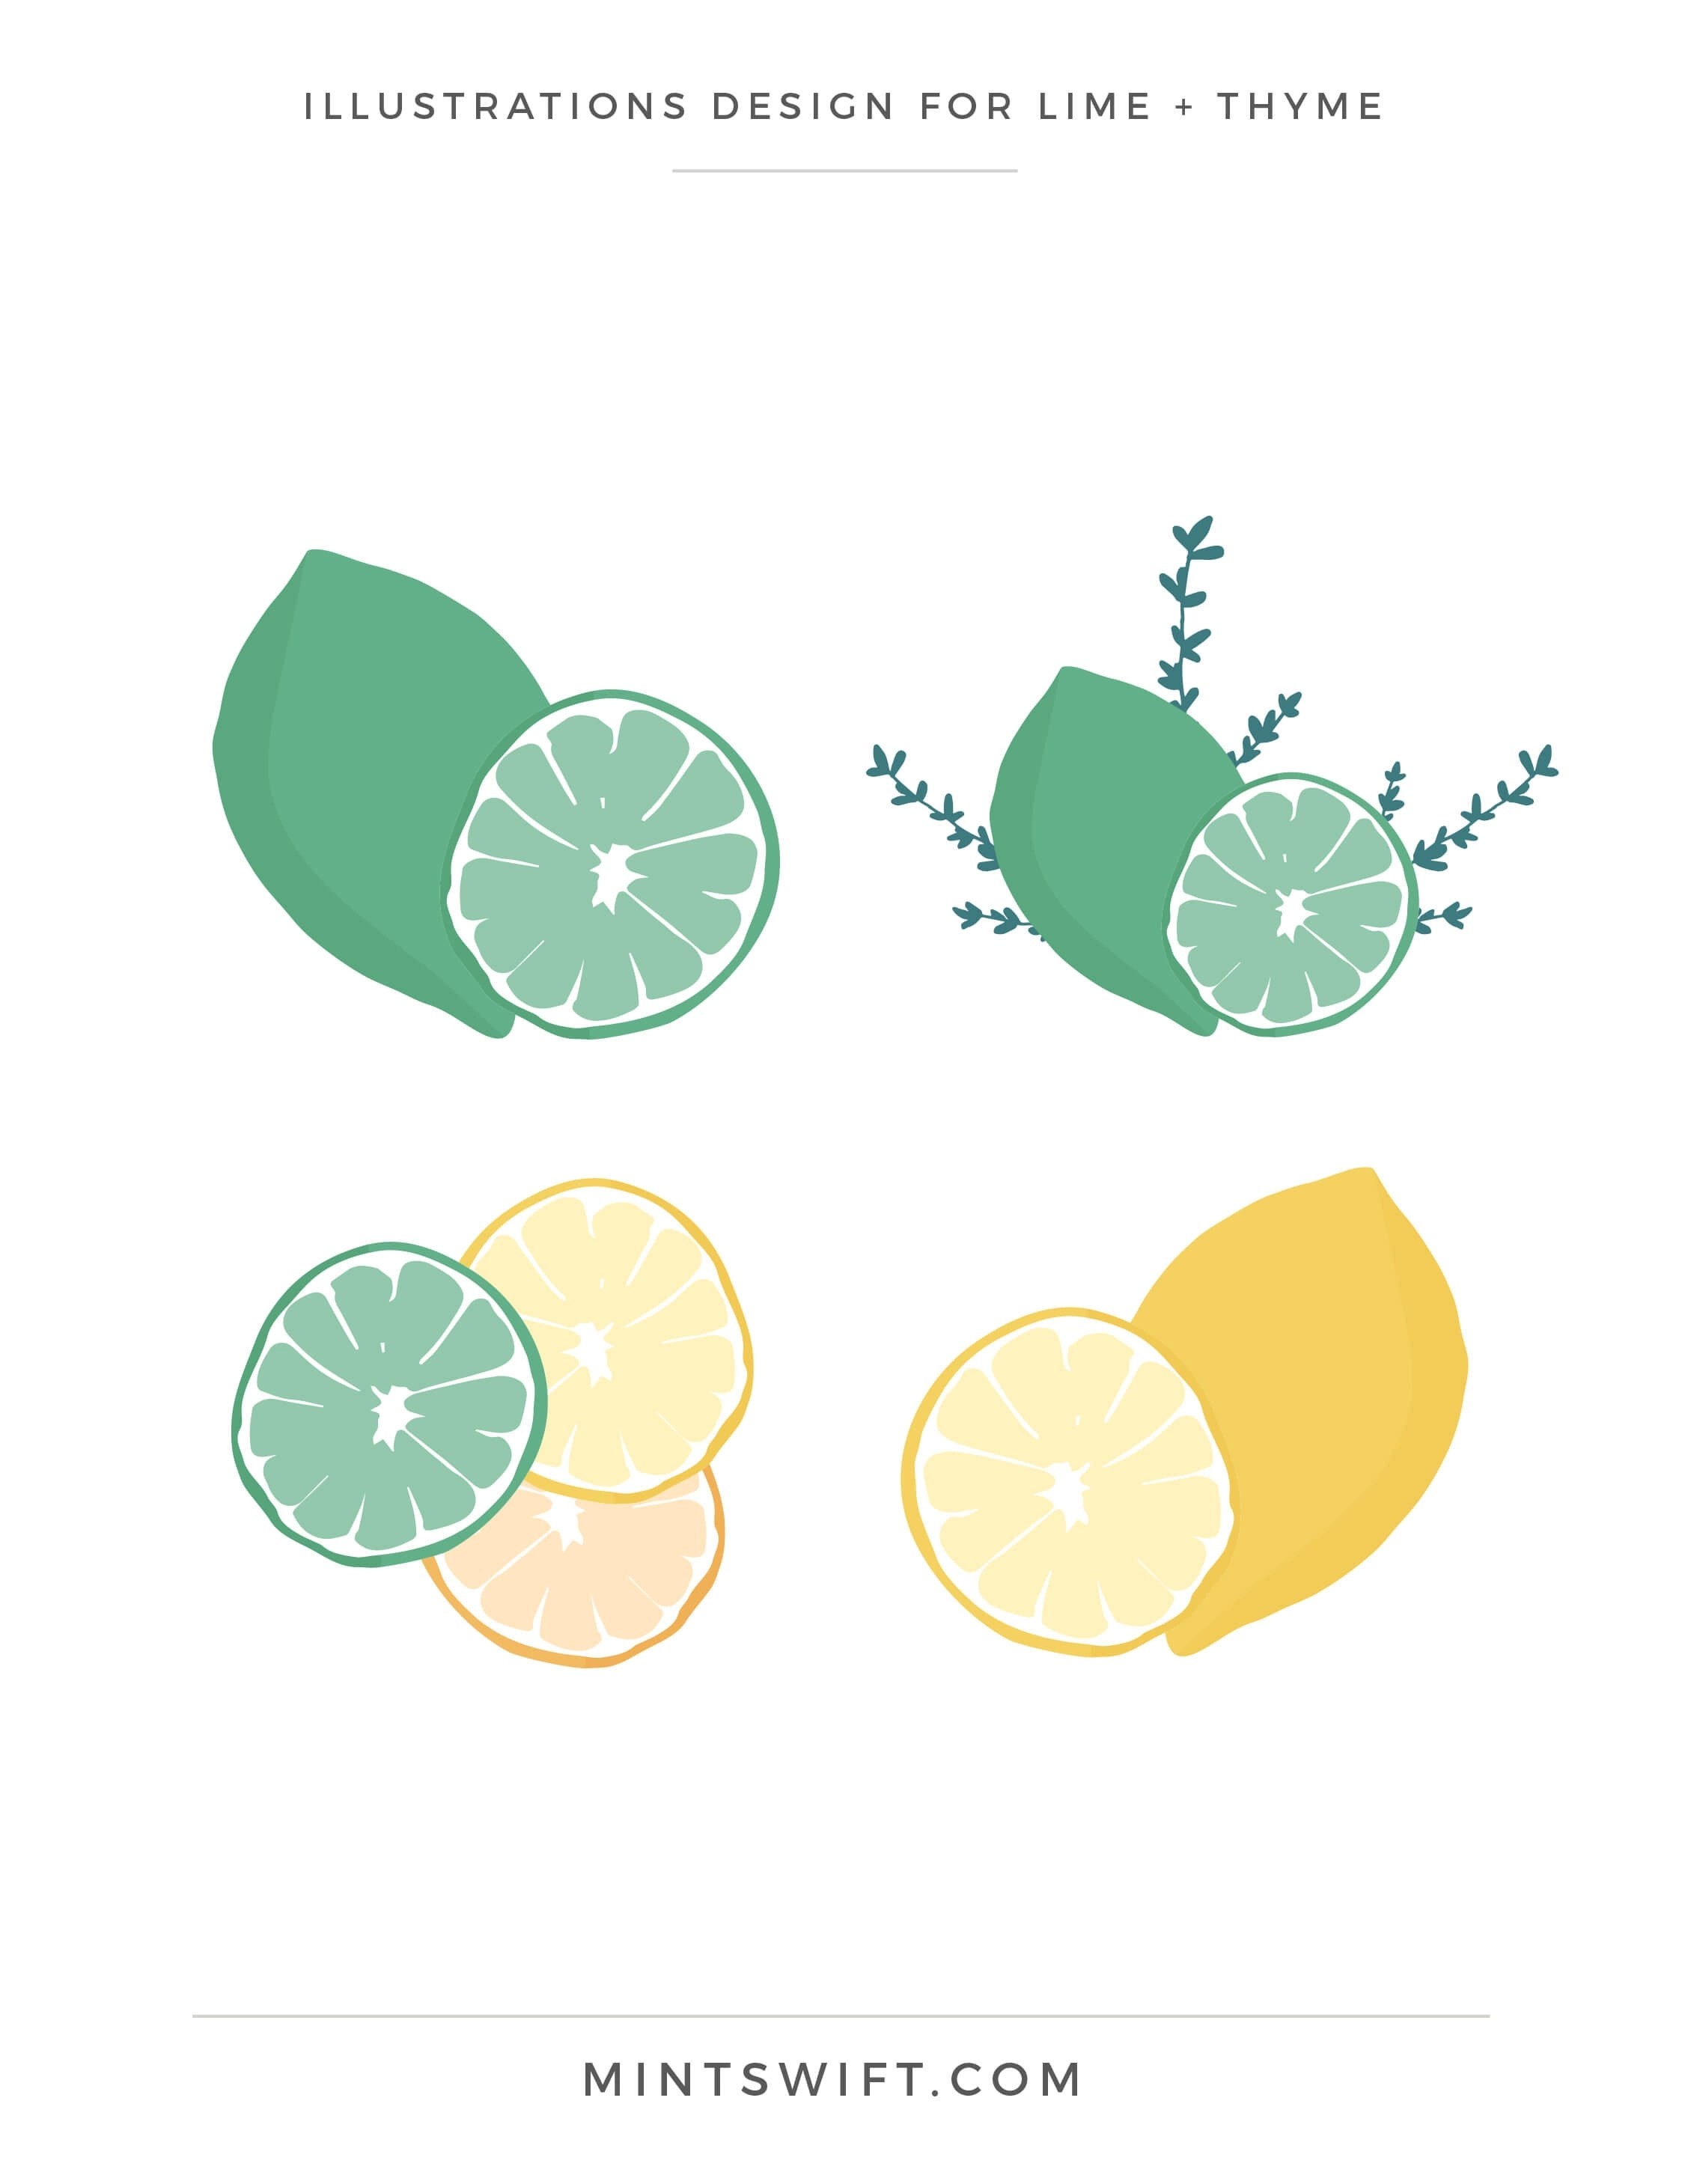 Lime + Thyme - Illustrations Design - Brand & Website Design - MintSwift